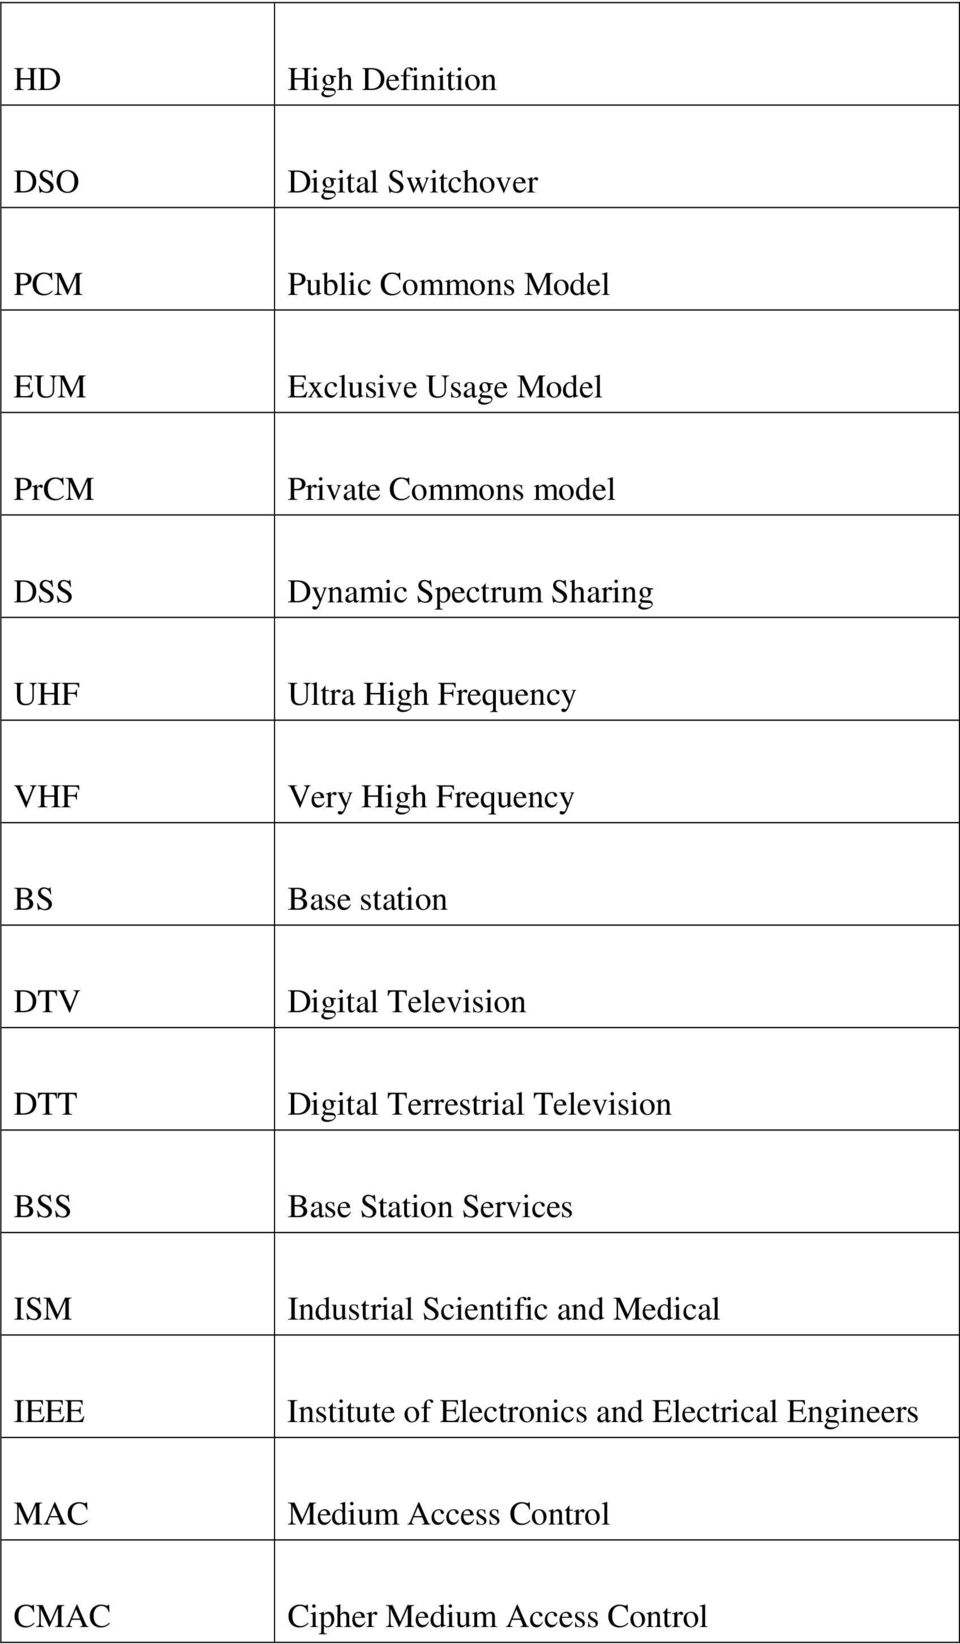 Digital Television DTT Digital Terrestrial Television BSS Base Station Services ISM Industrial Scientific and